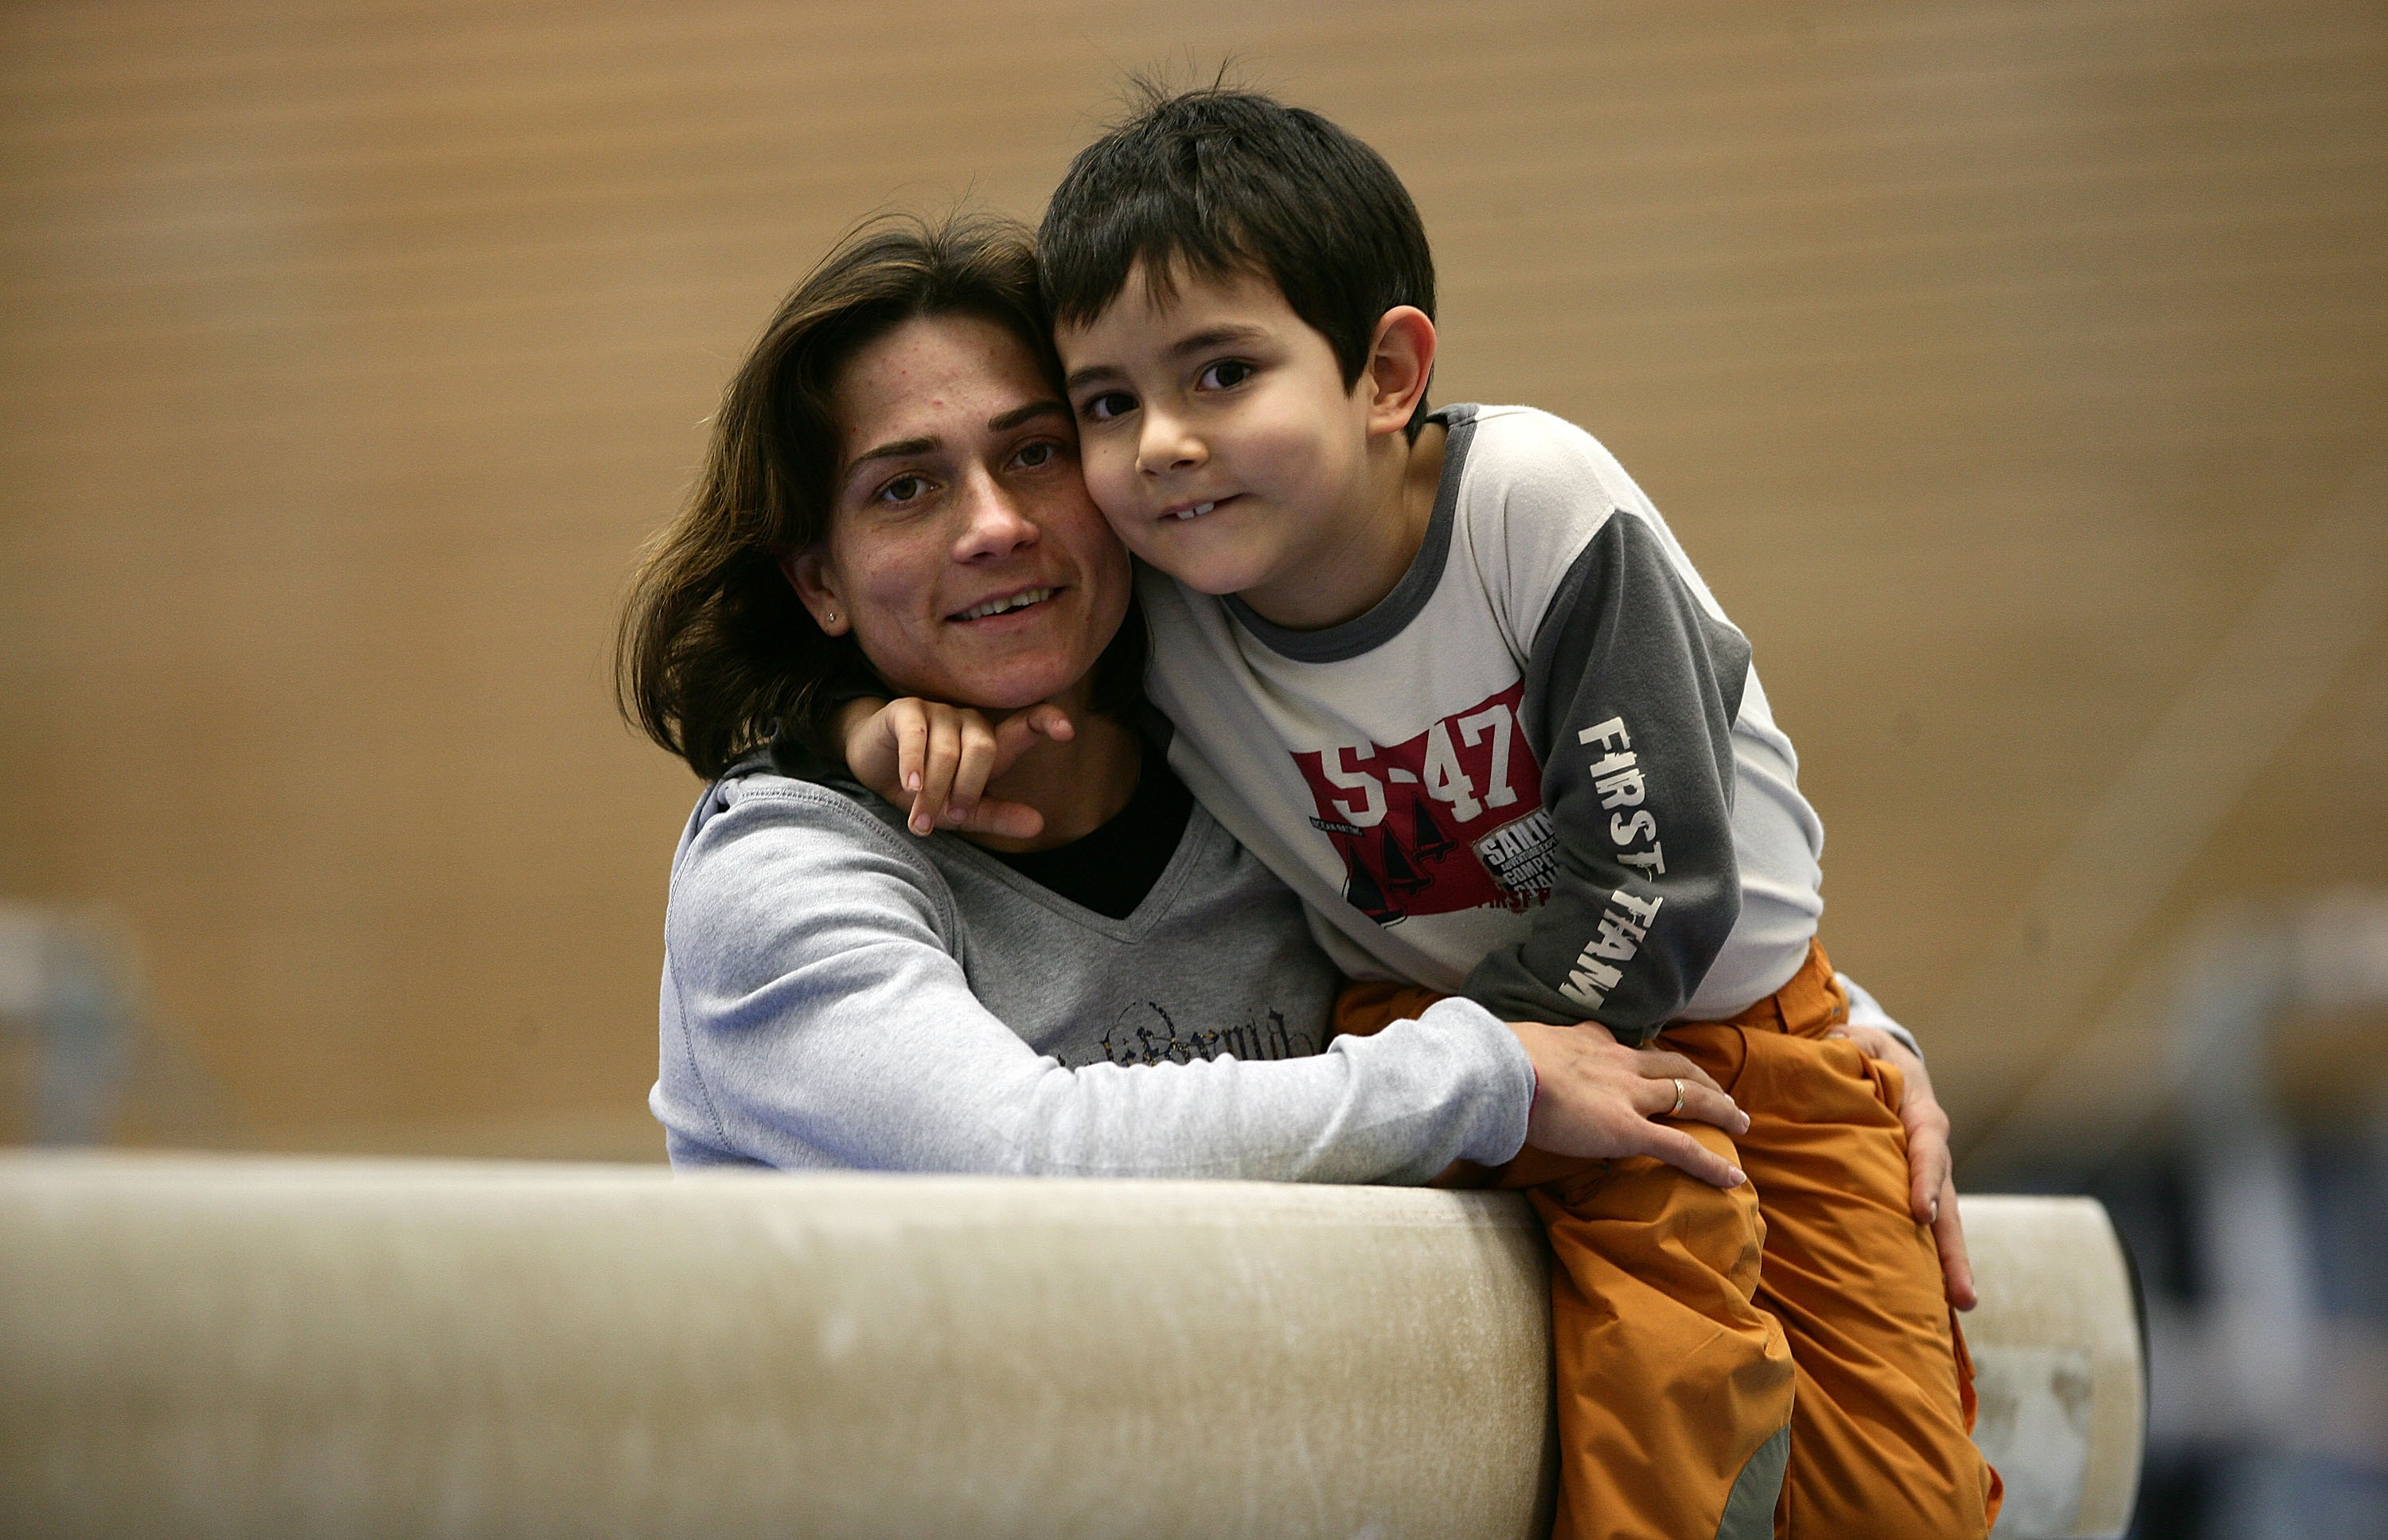 COLOGNE, GERMANY - DECEMBER 04:  German gymnast Oksana Chusovitina pose for a photo with her son Alisher prior to the training on December 04, 2006 in Cologne, Germany.  (Photo by Vladimir Rys/Bongarts/Getty Images)